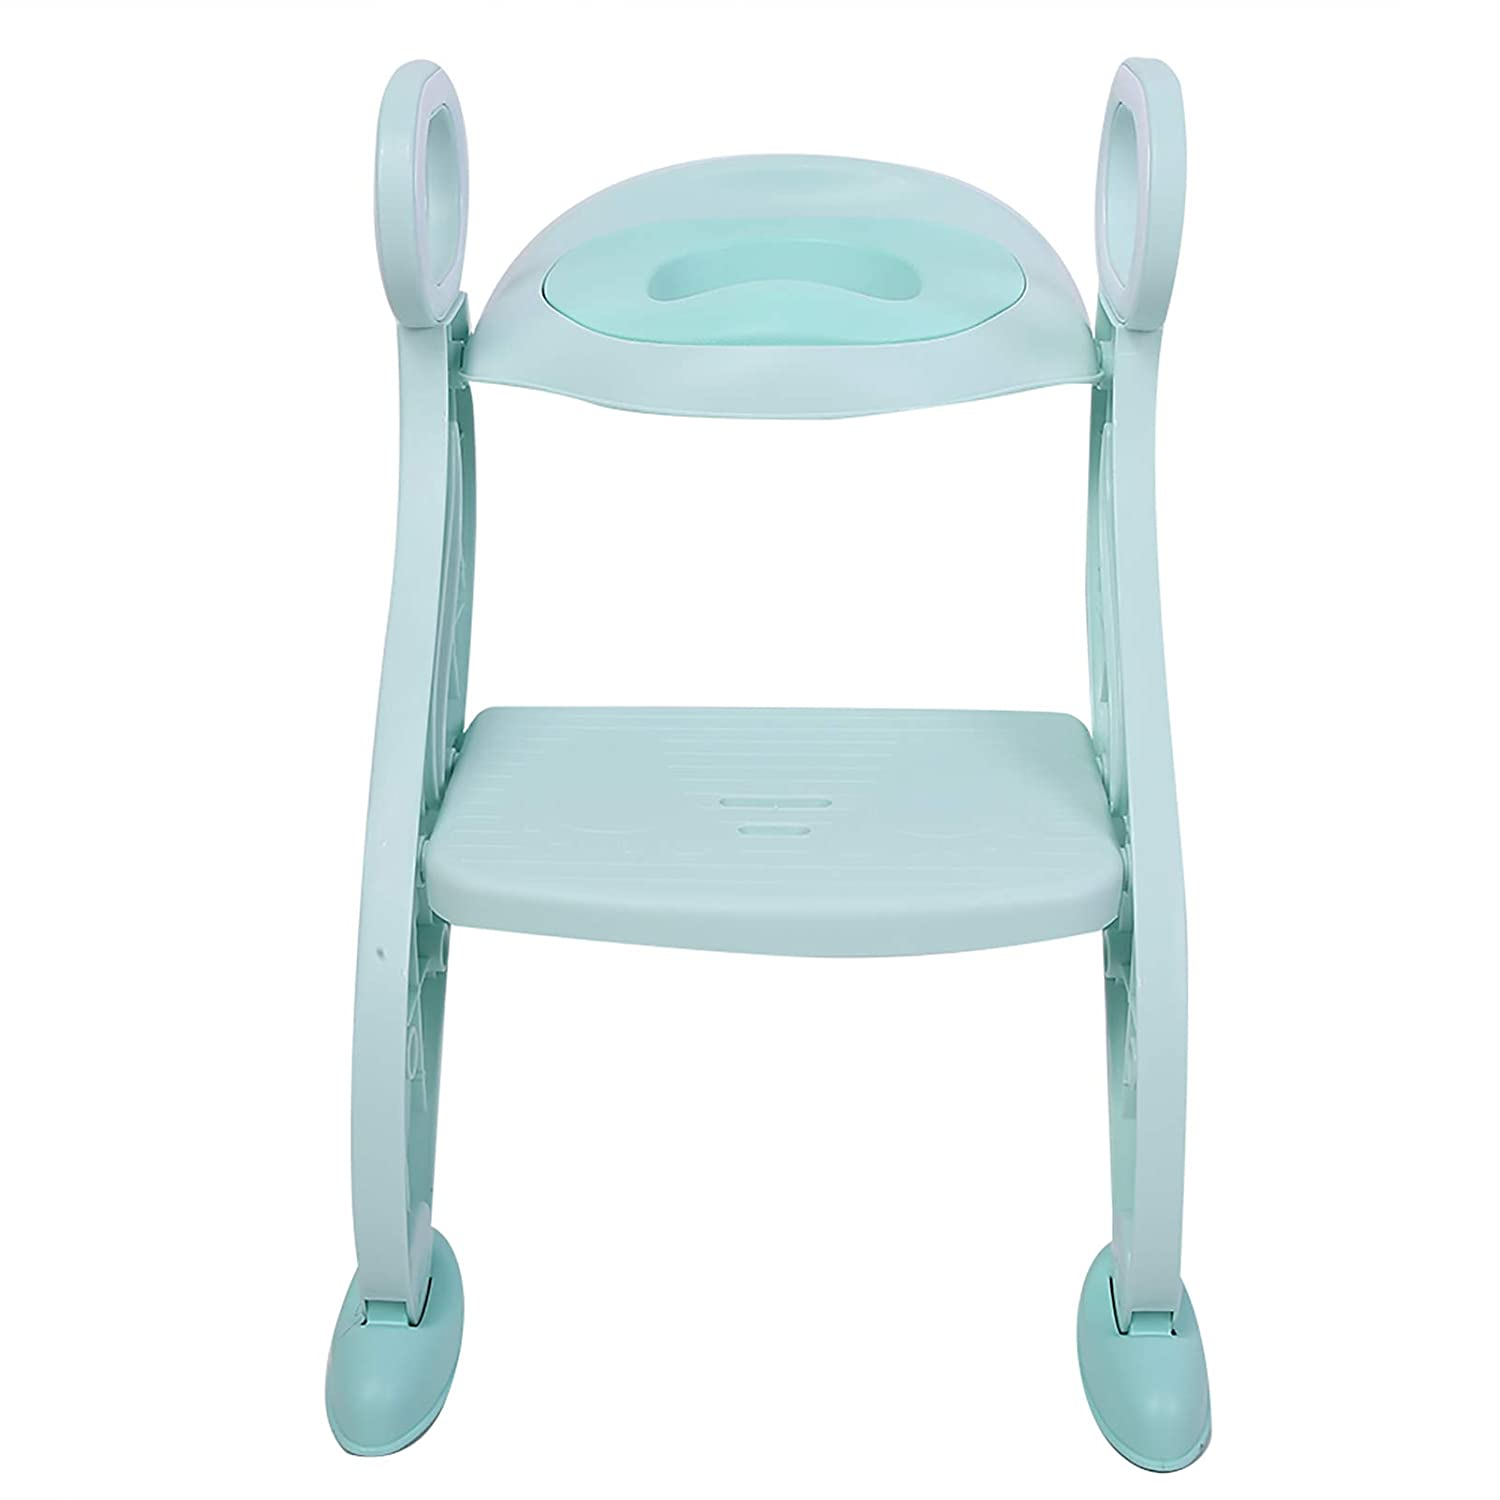 Potty Training Toilet Seat Toddler with shop Step Seattle Mall Safely